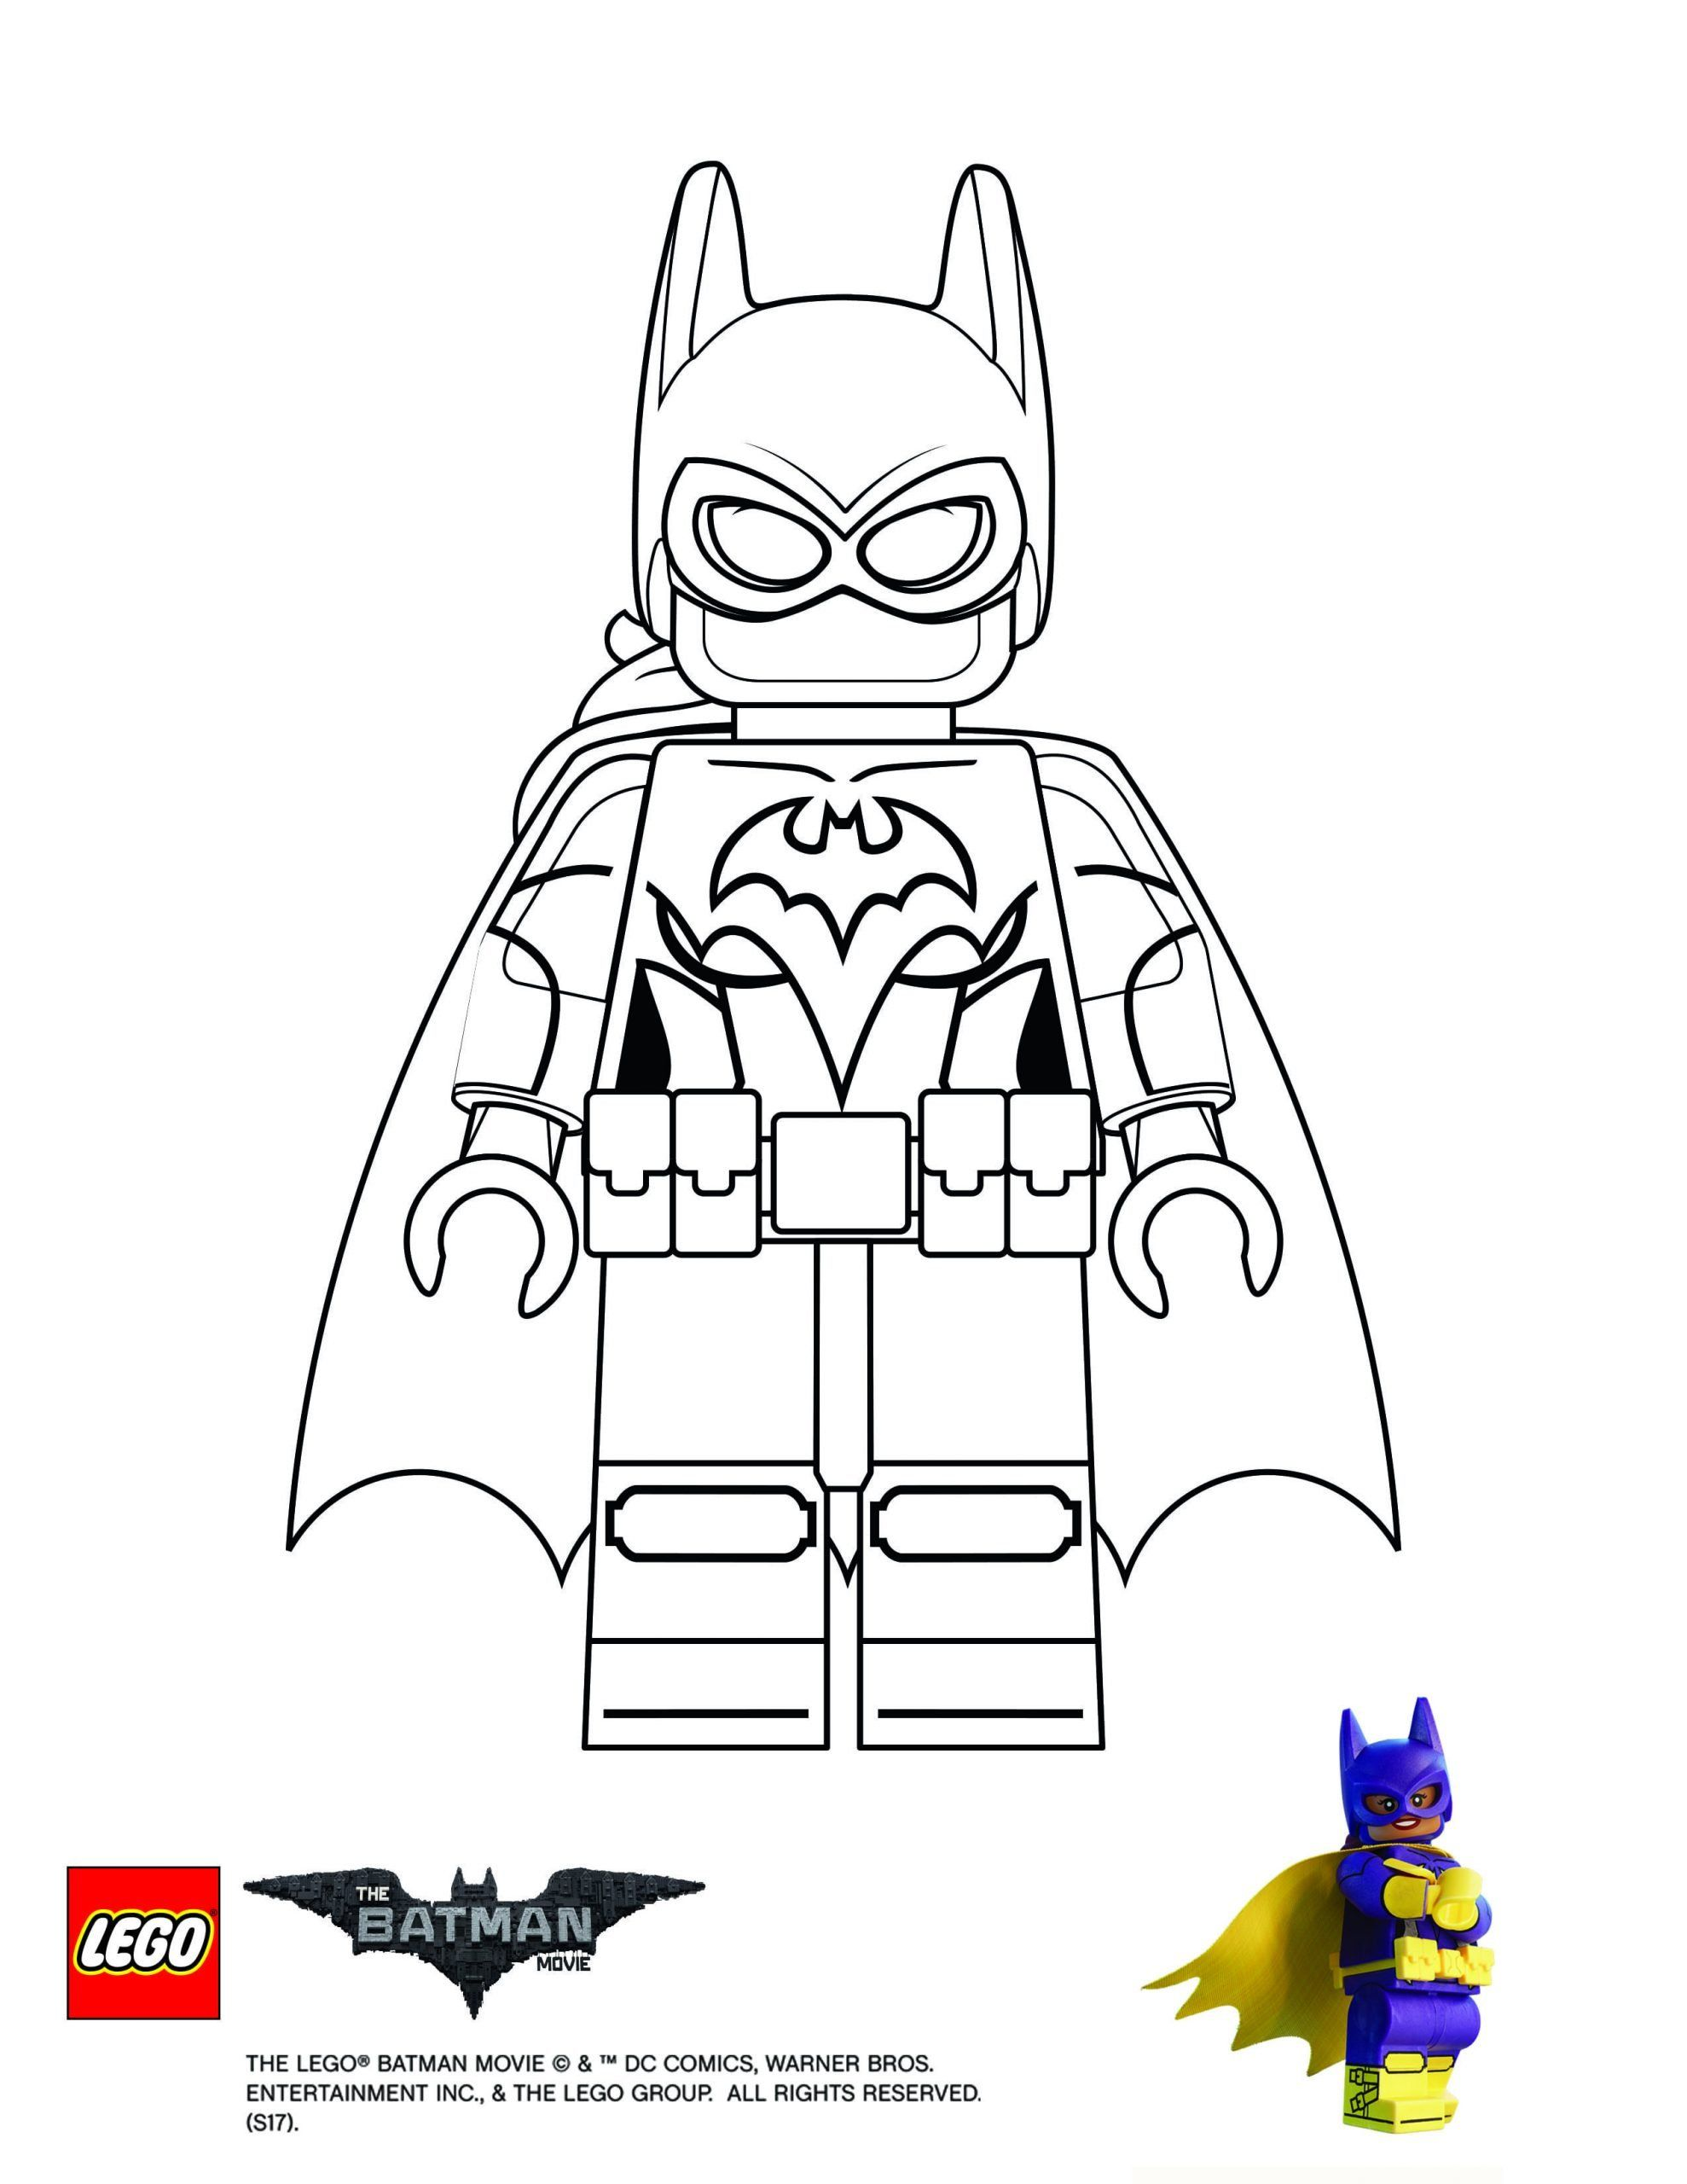 Lego Superman And Batman In Space Coloring Page Printable Sheet Lego Dc Universe Super Heroes Avengers Coloring Superhero Coloring Superman Coloring Pages